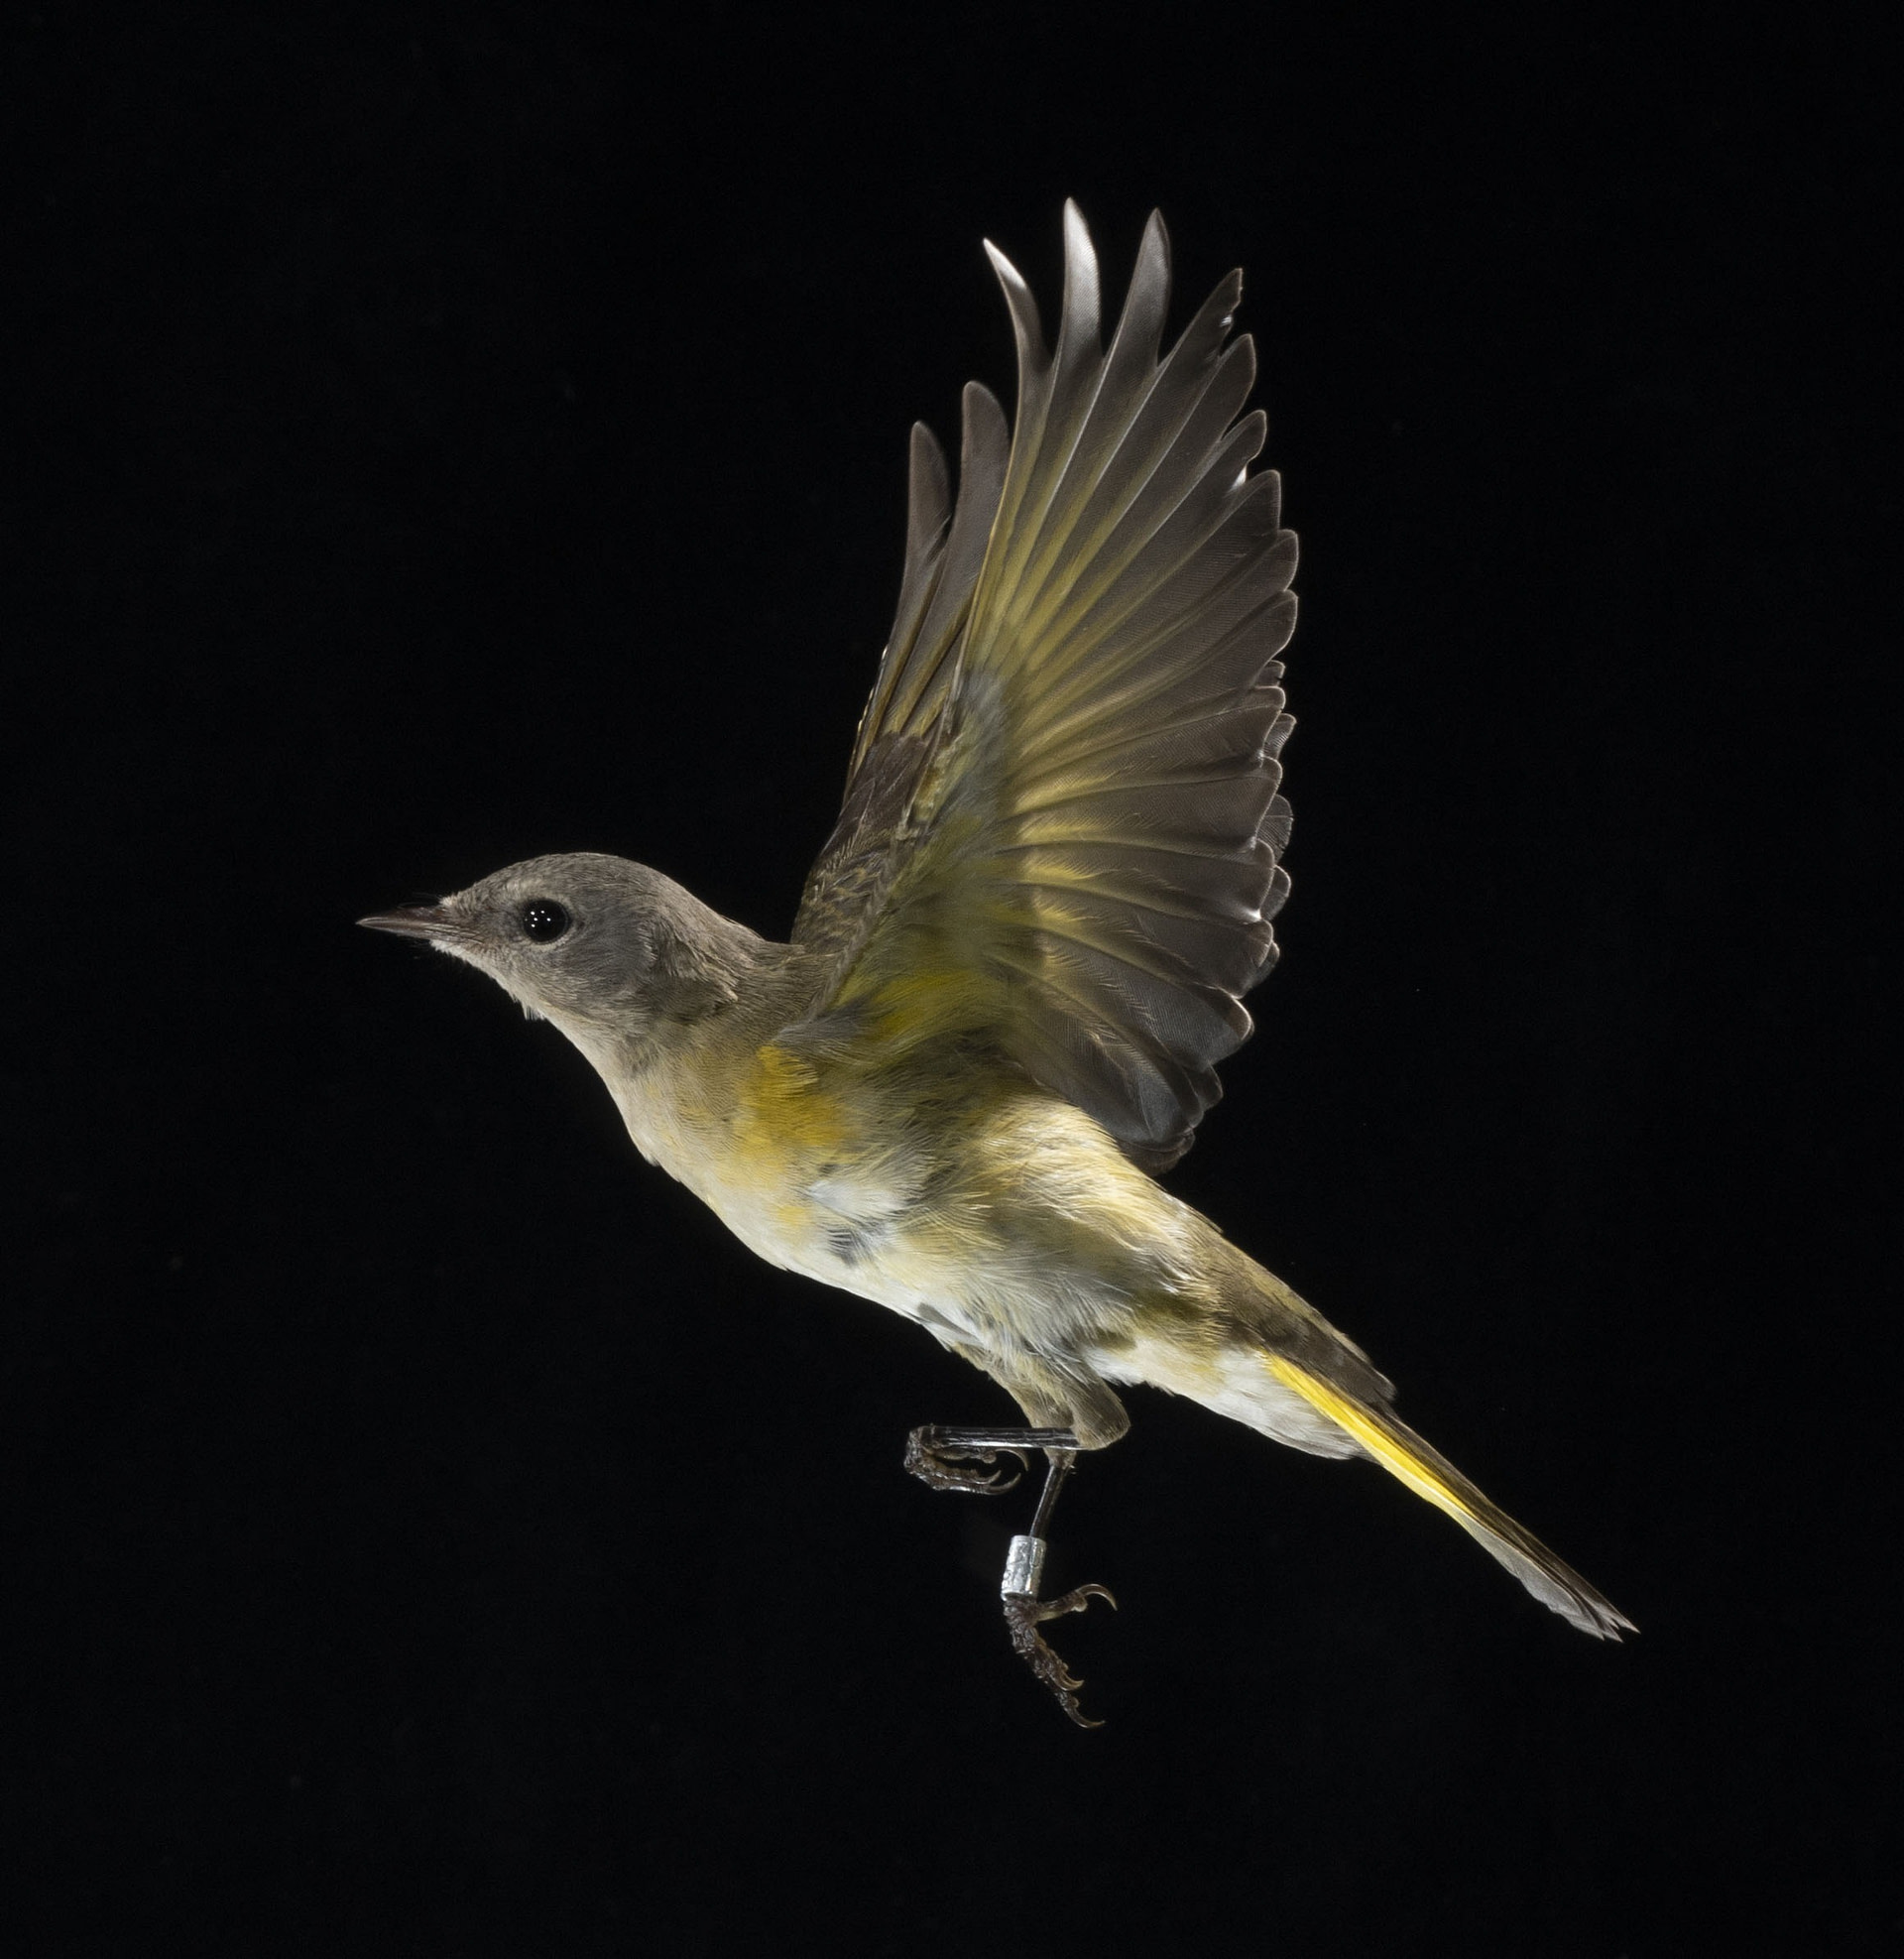 American Redstart in flight in front of a black background